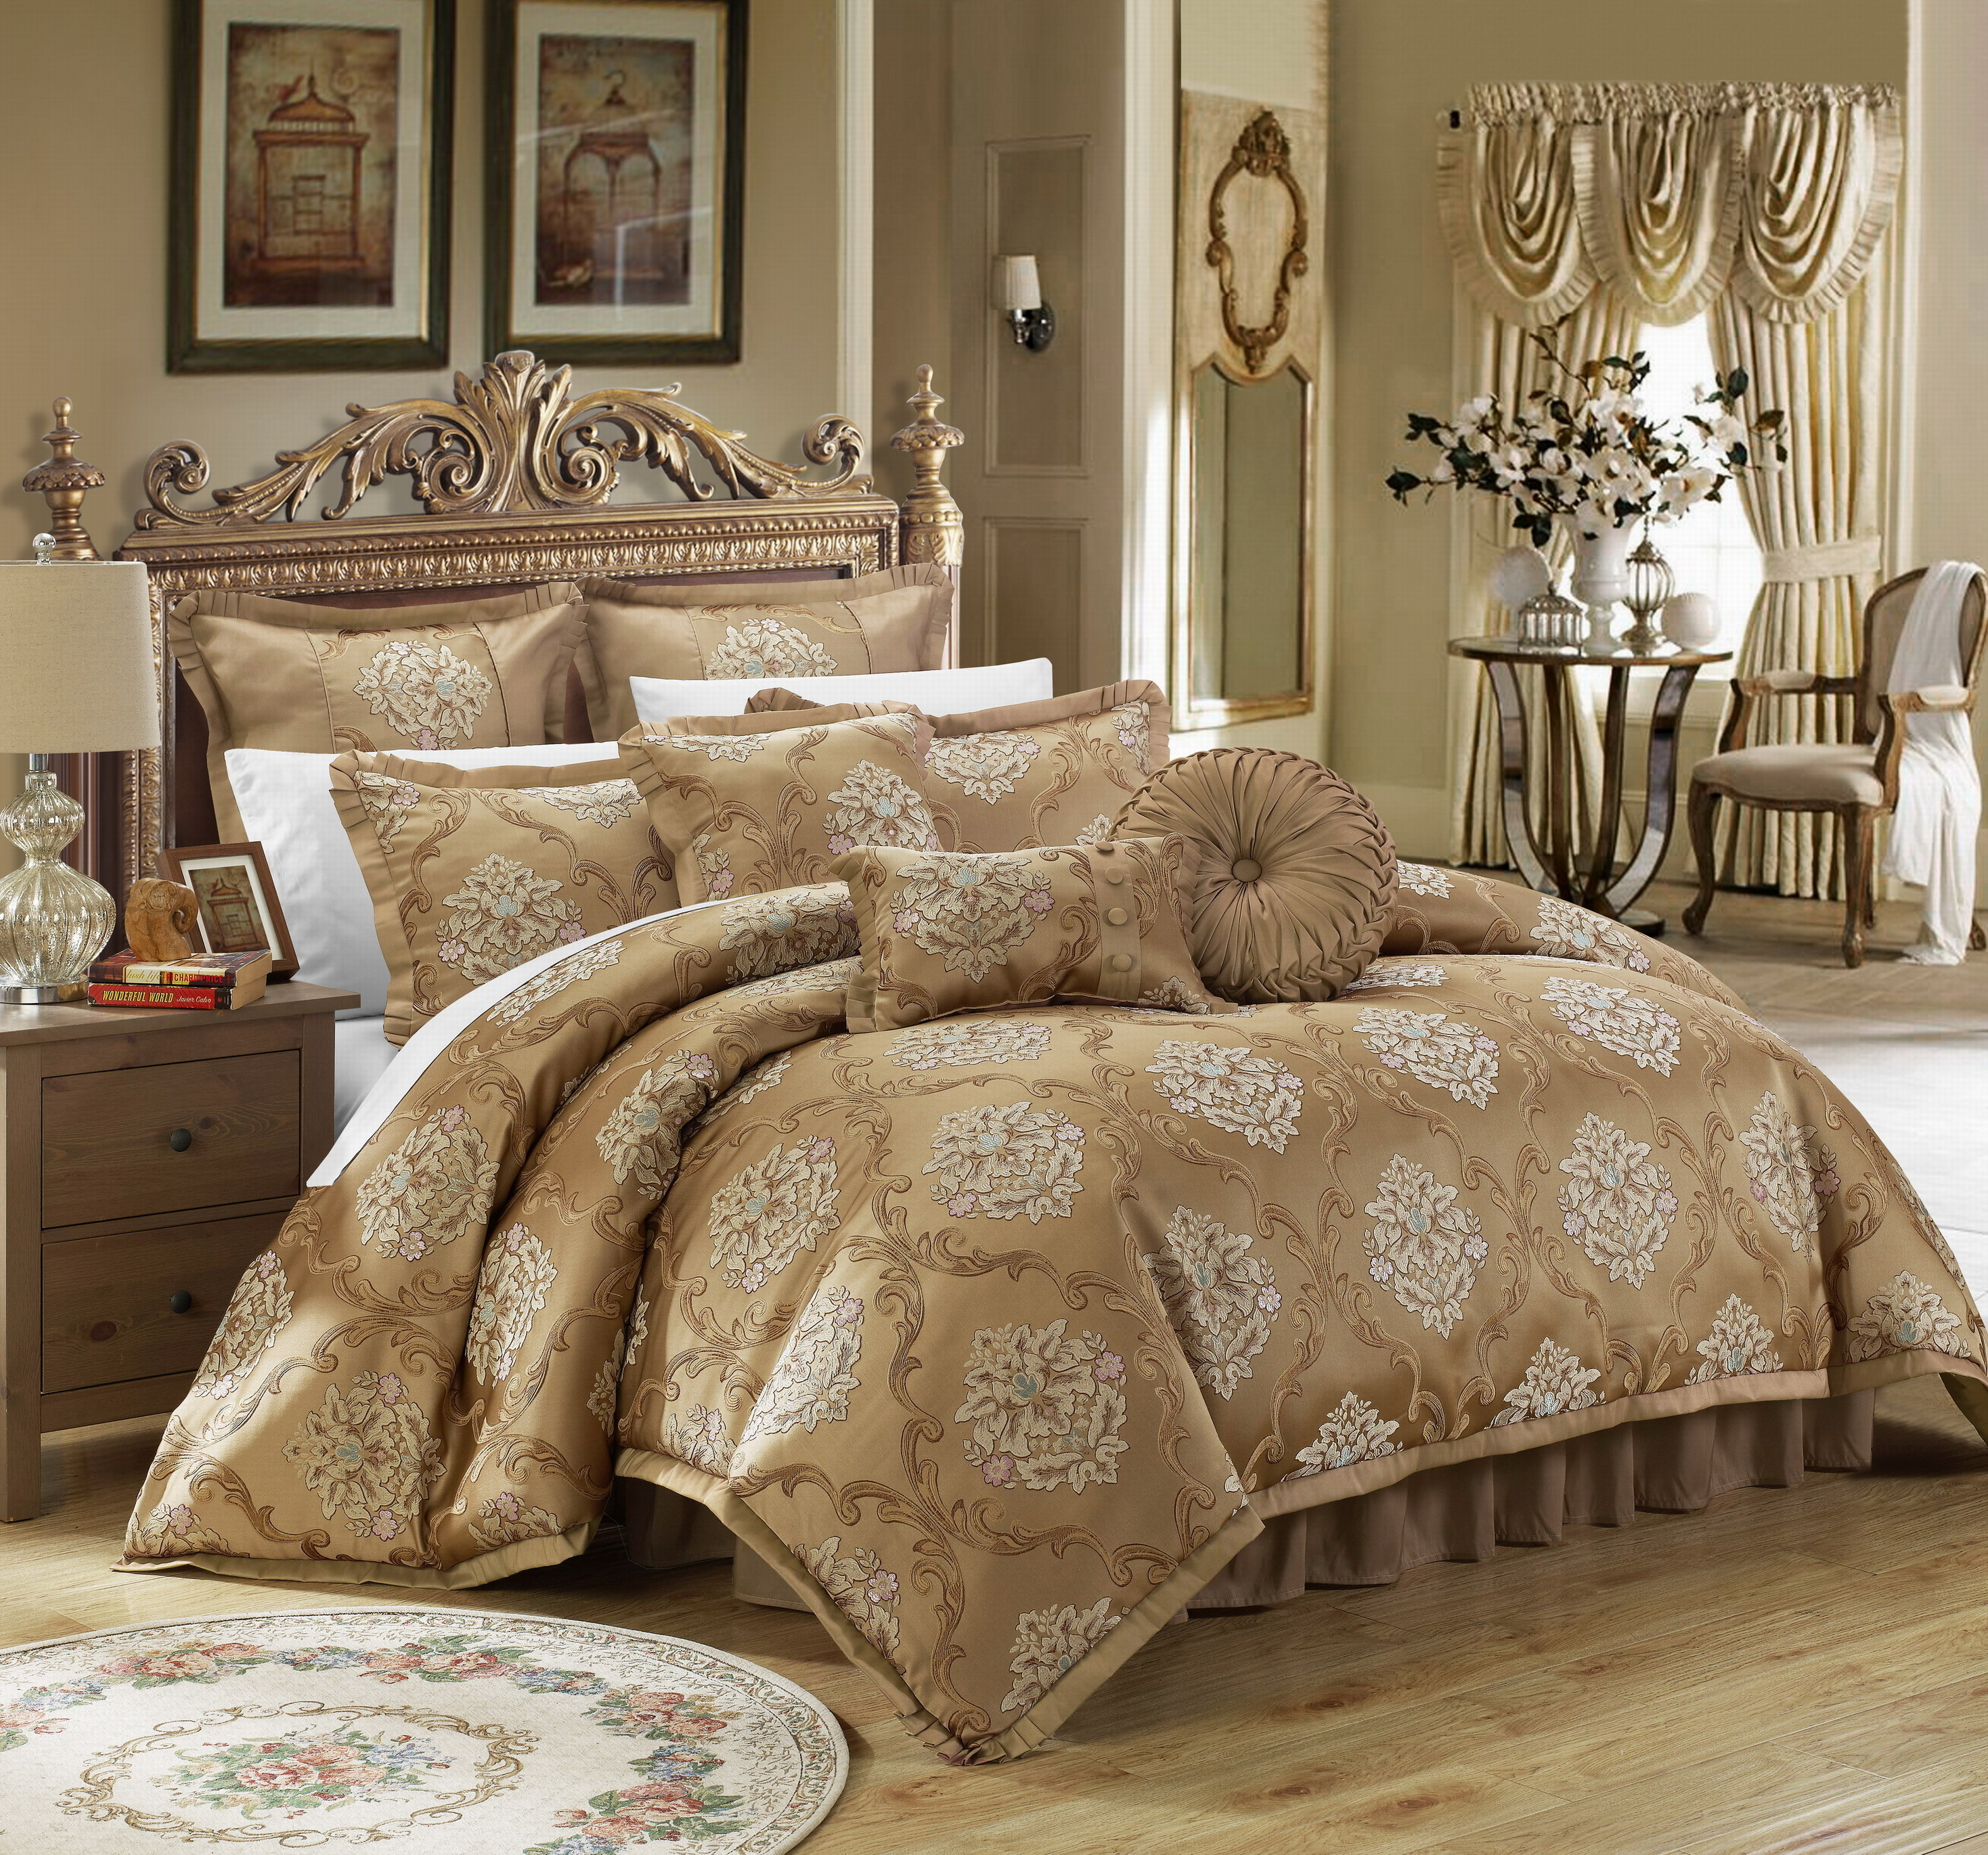 9 Piece Aubrey Decorator Upholstery Quality Jacquard Scroll Fabric Complete Master Bedroom Comforter Set And Pillows Ensemble Gold Queen On Opensky Ibt Shop